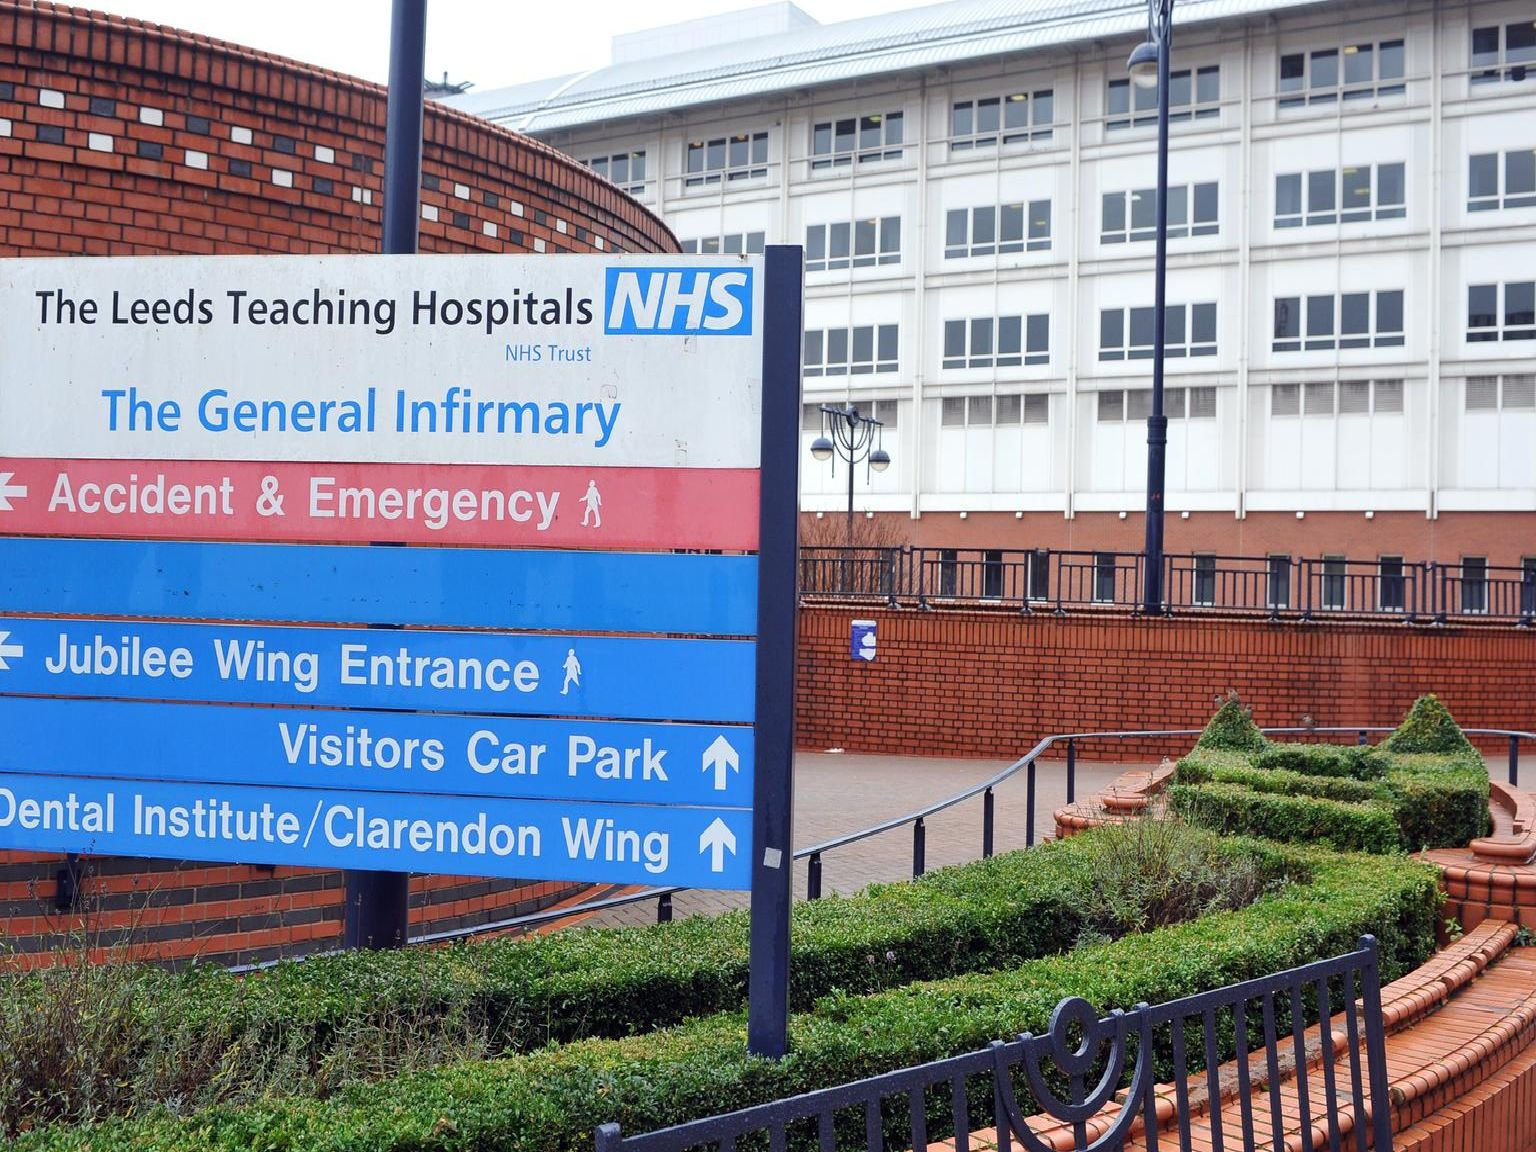 The Care Quality Commission (CQC) has revealed the best hospitals in Leeds and the ones that require improvement.